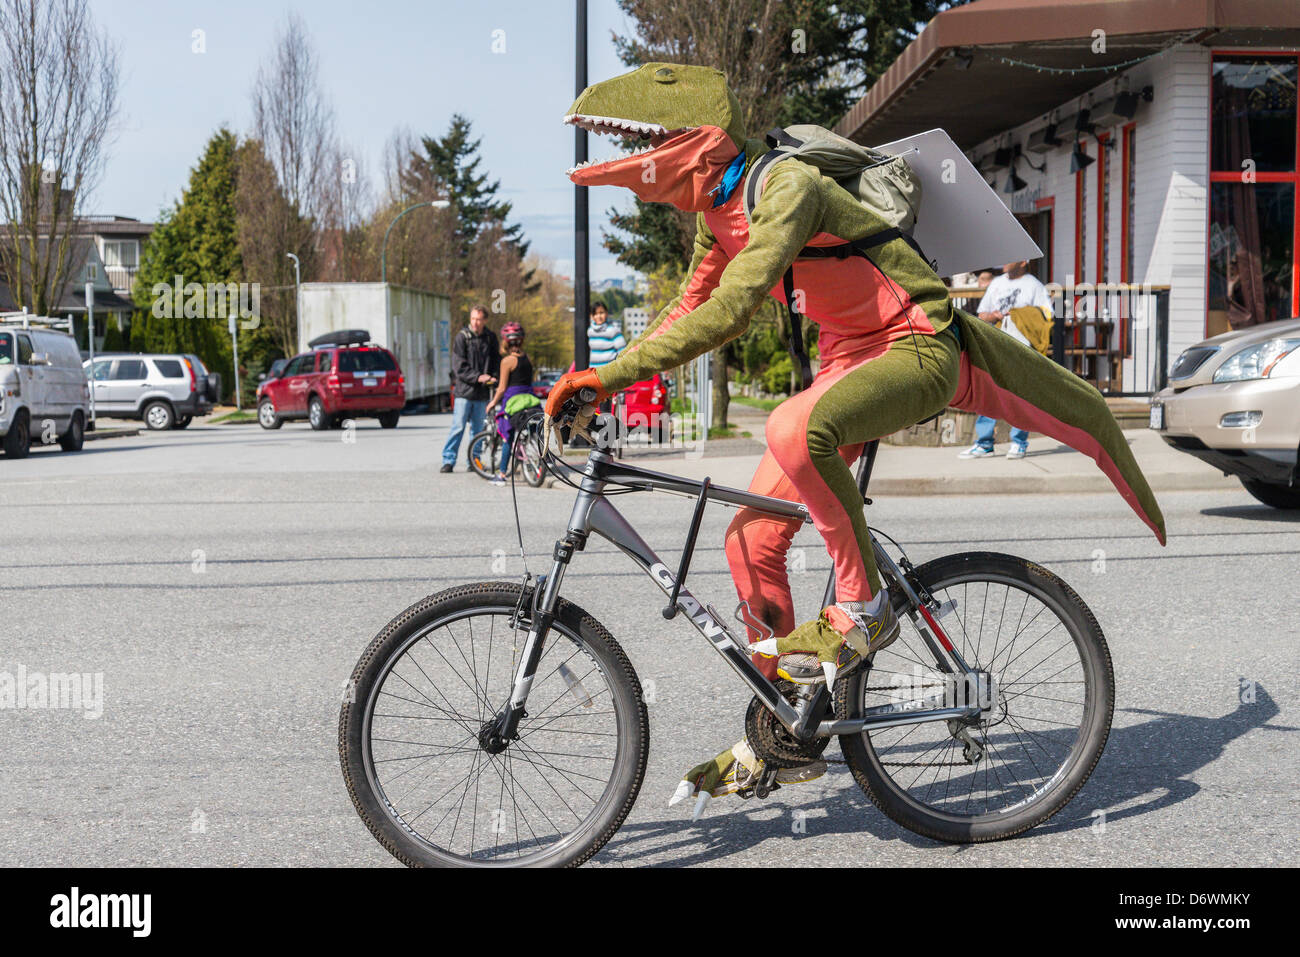 Dinosaurs against fossil fuels at Vancouver Earth Day Parade and Festival 2013 - Stock Image